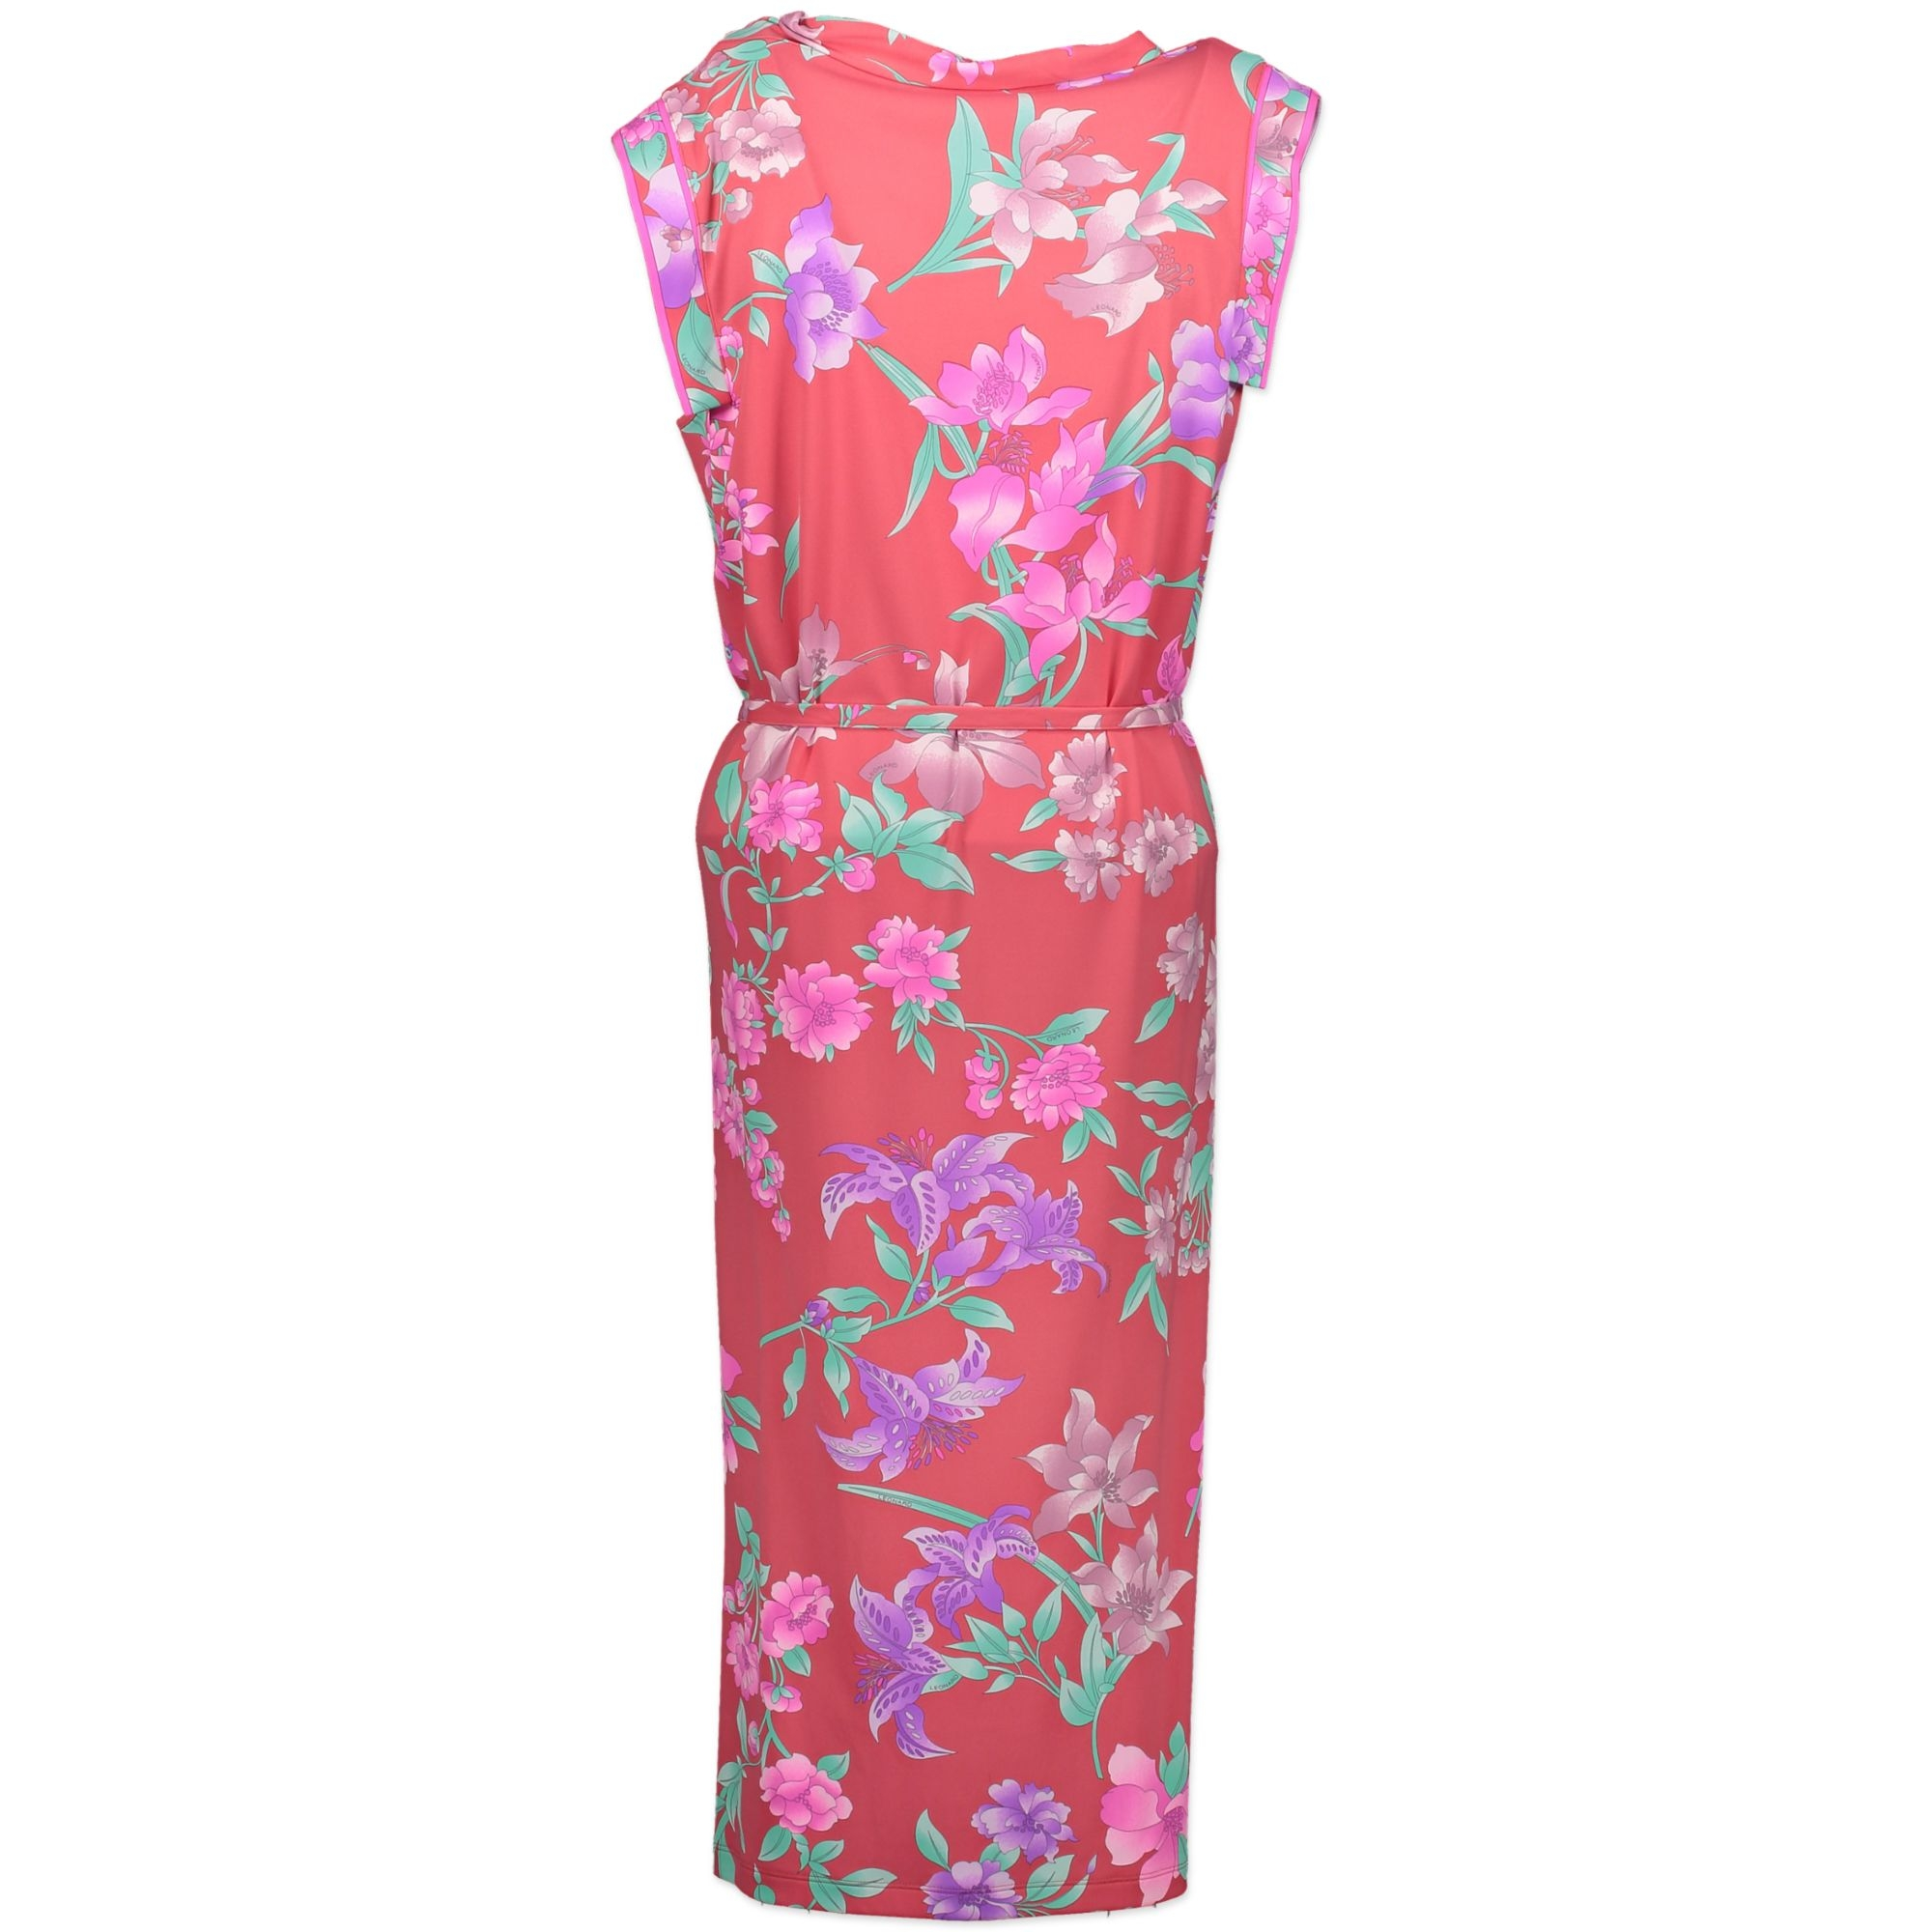 Buy authentic secondhand Leonard Fuchsia dress at the right price at labellov.